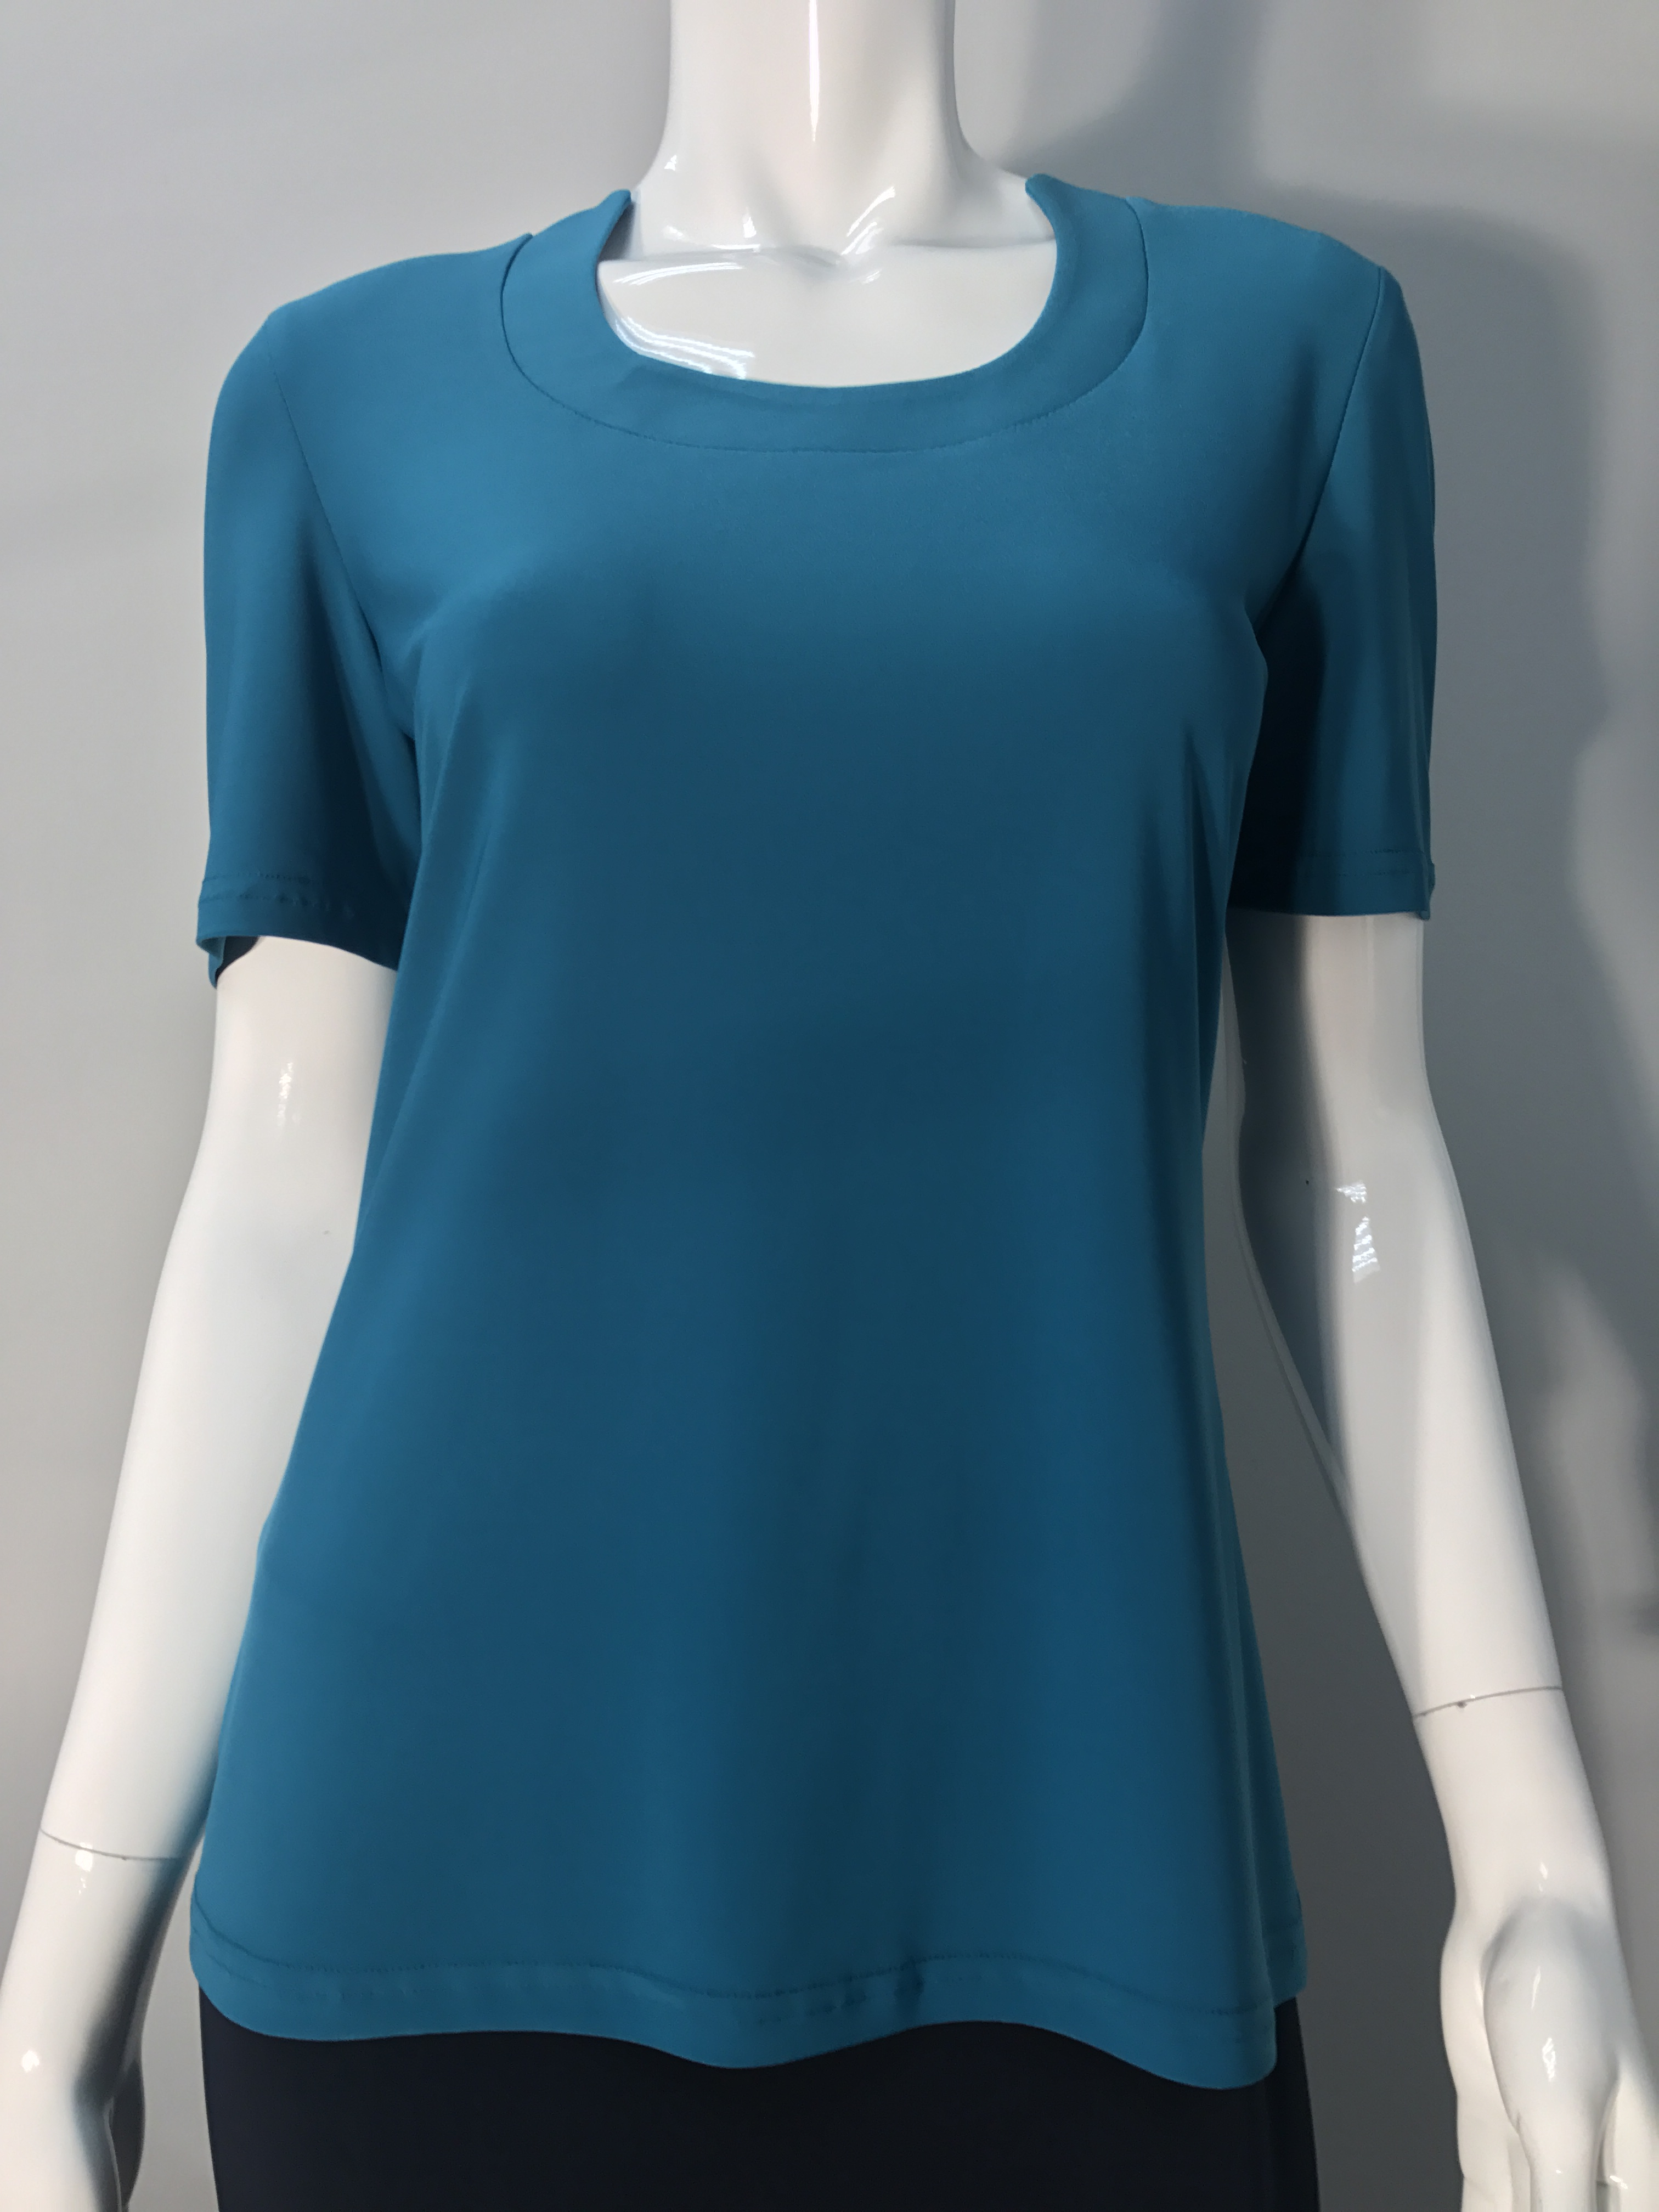 T-1821 TEAL